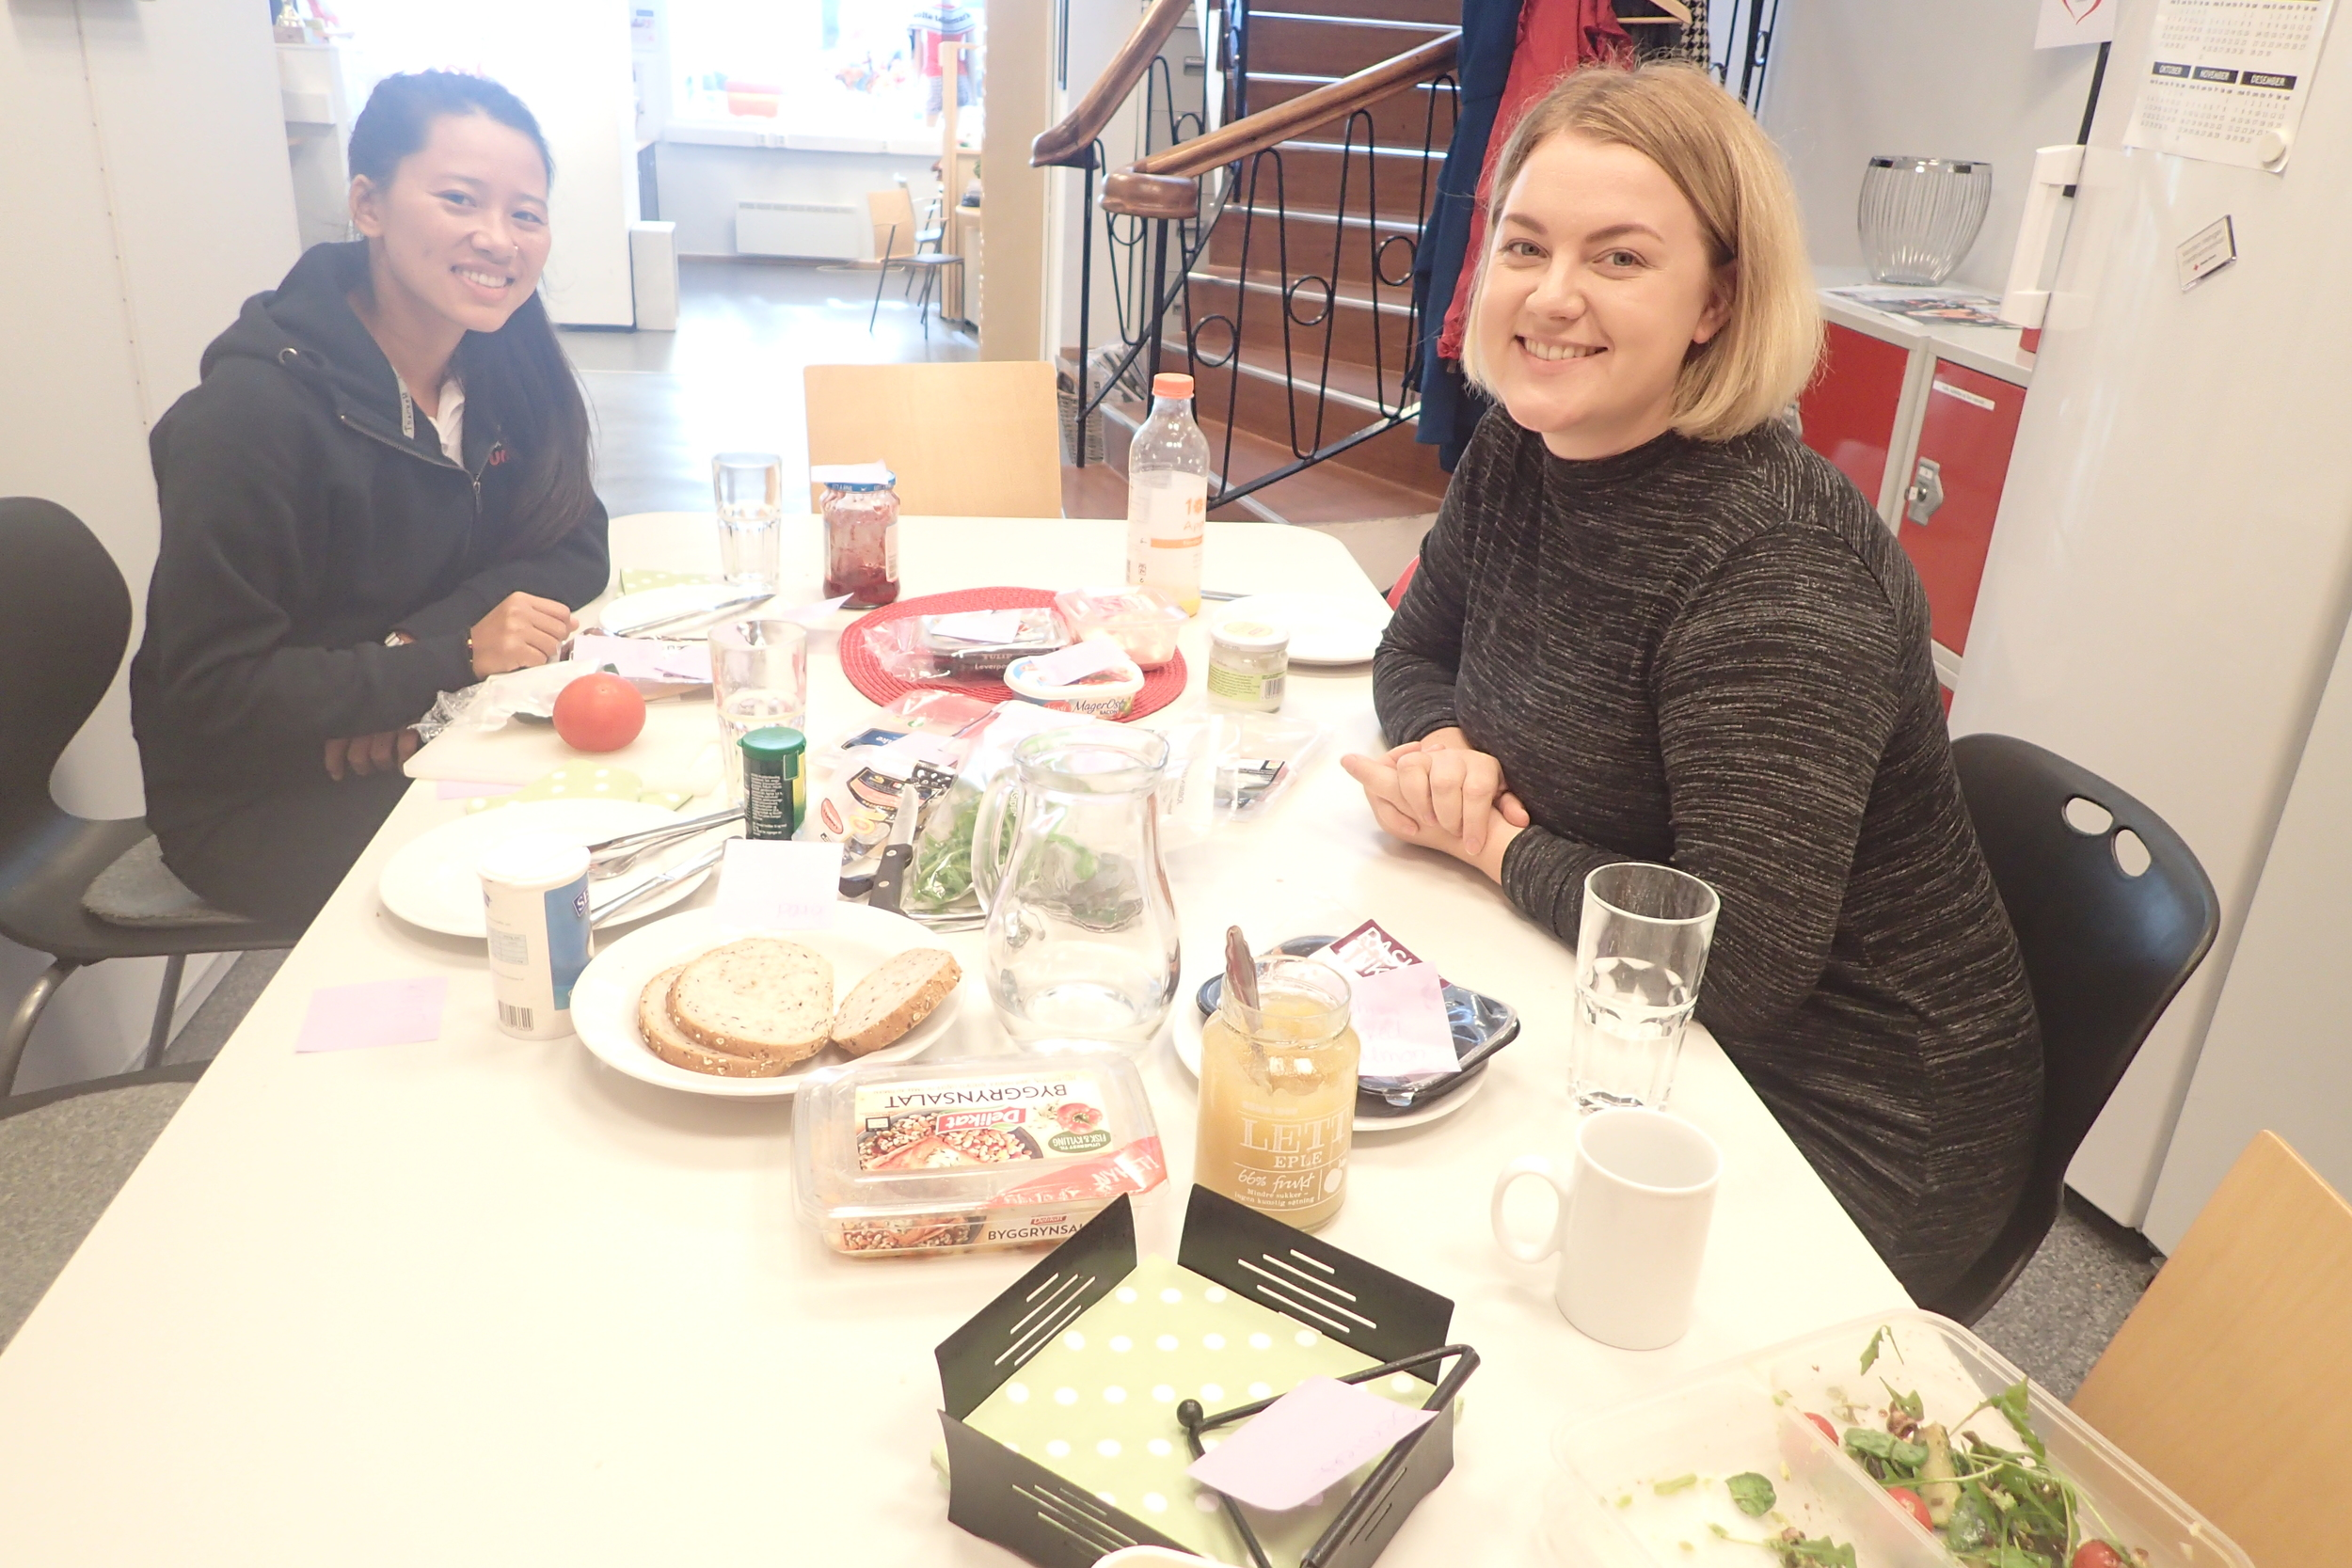 Second day at the office with our district contact person, learning Norwegian names of some food.